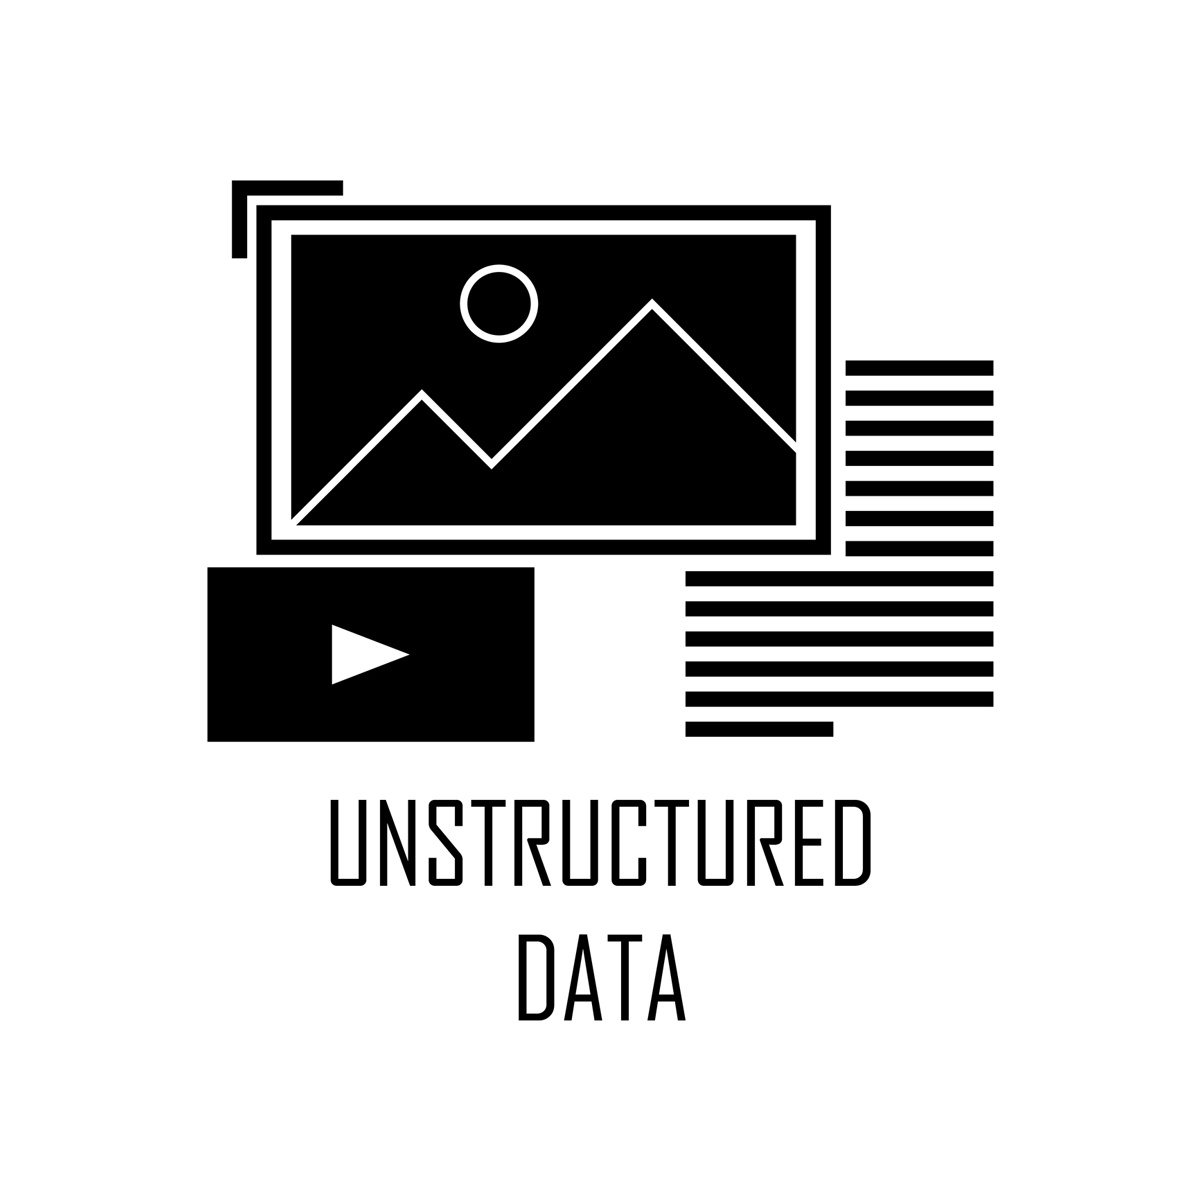 examples of unstructured data